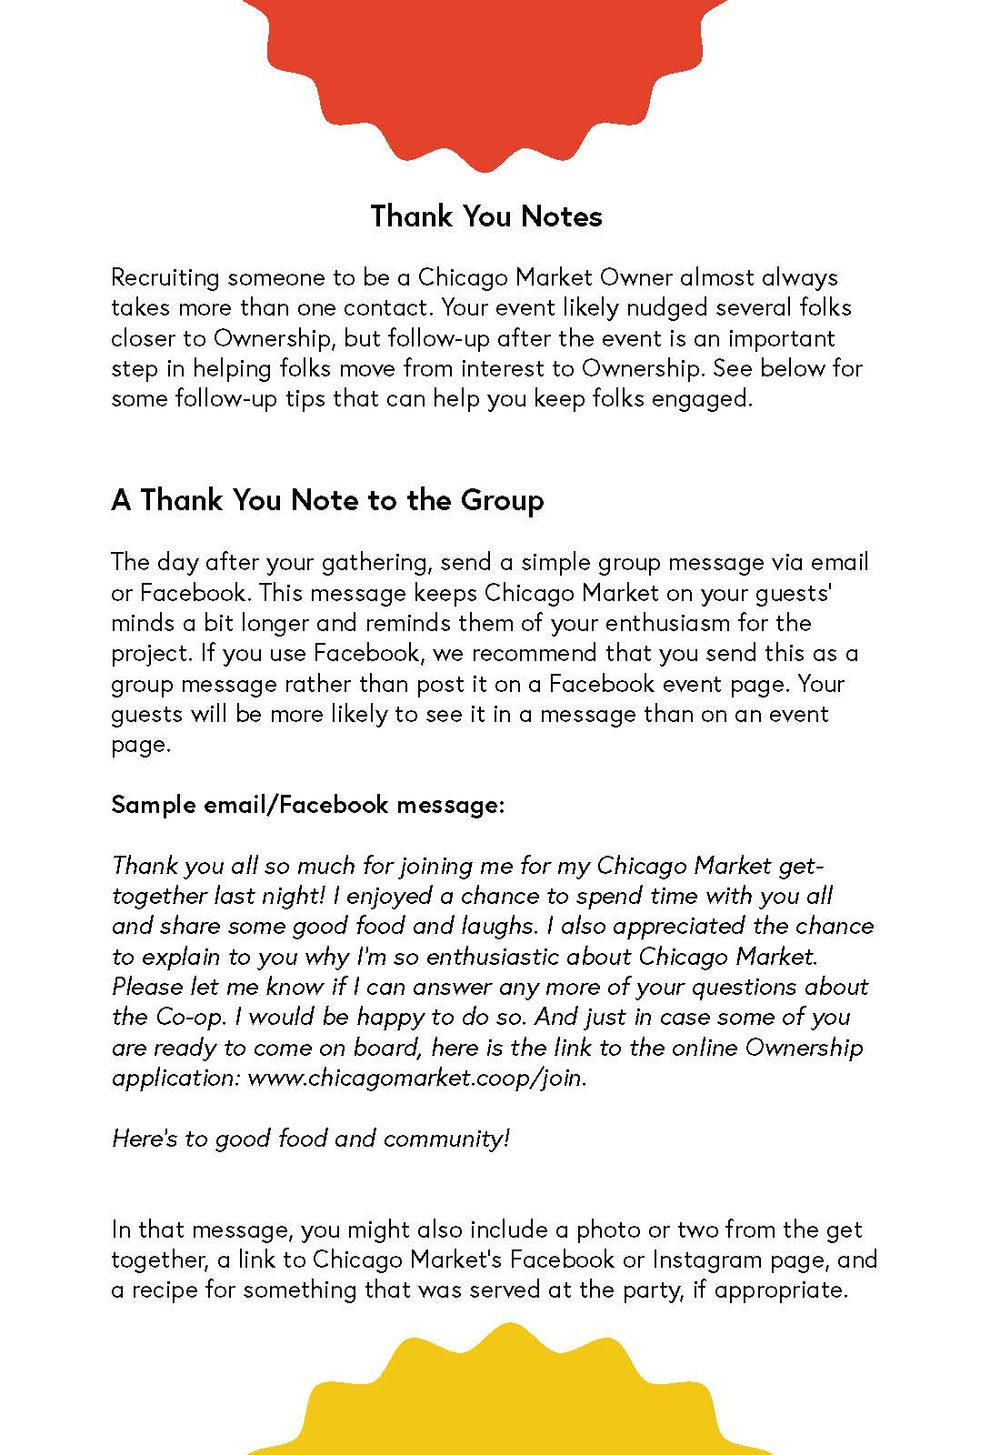 houseparty-pamphlet_Page_11.jpg